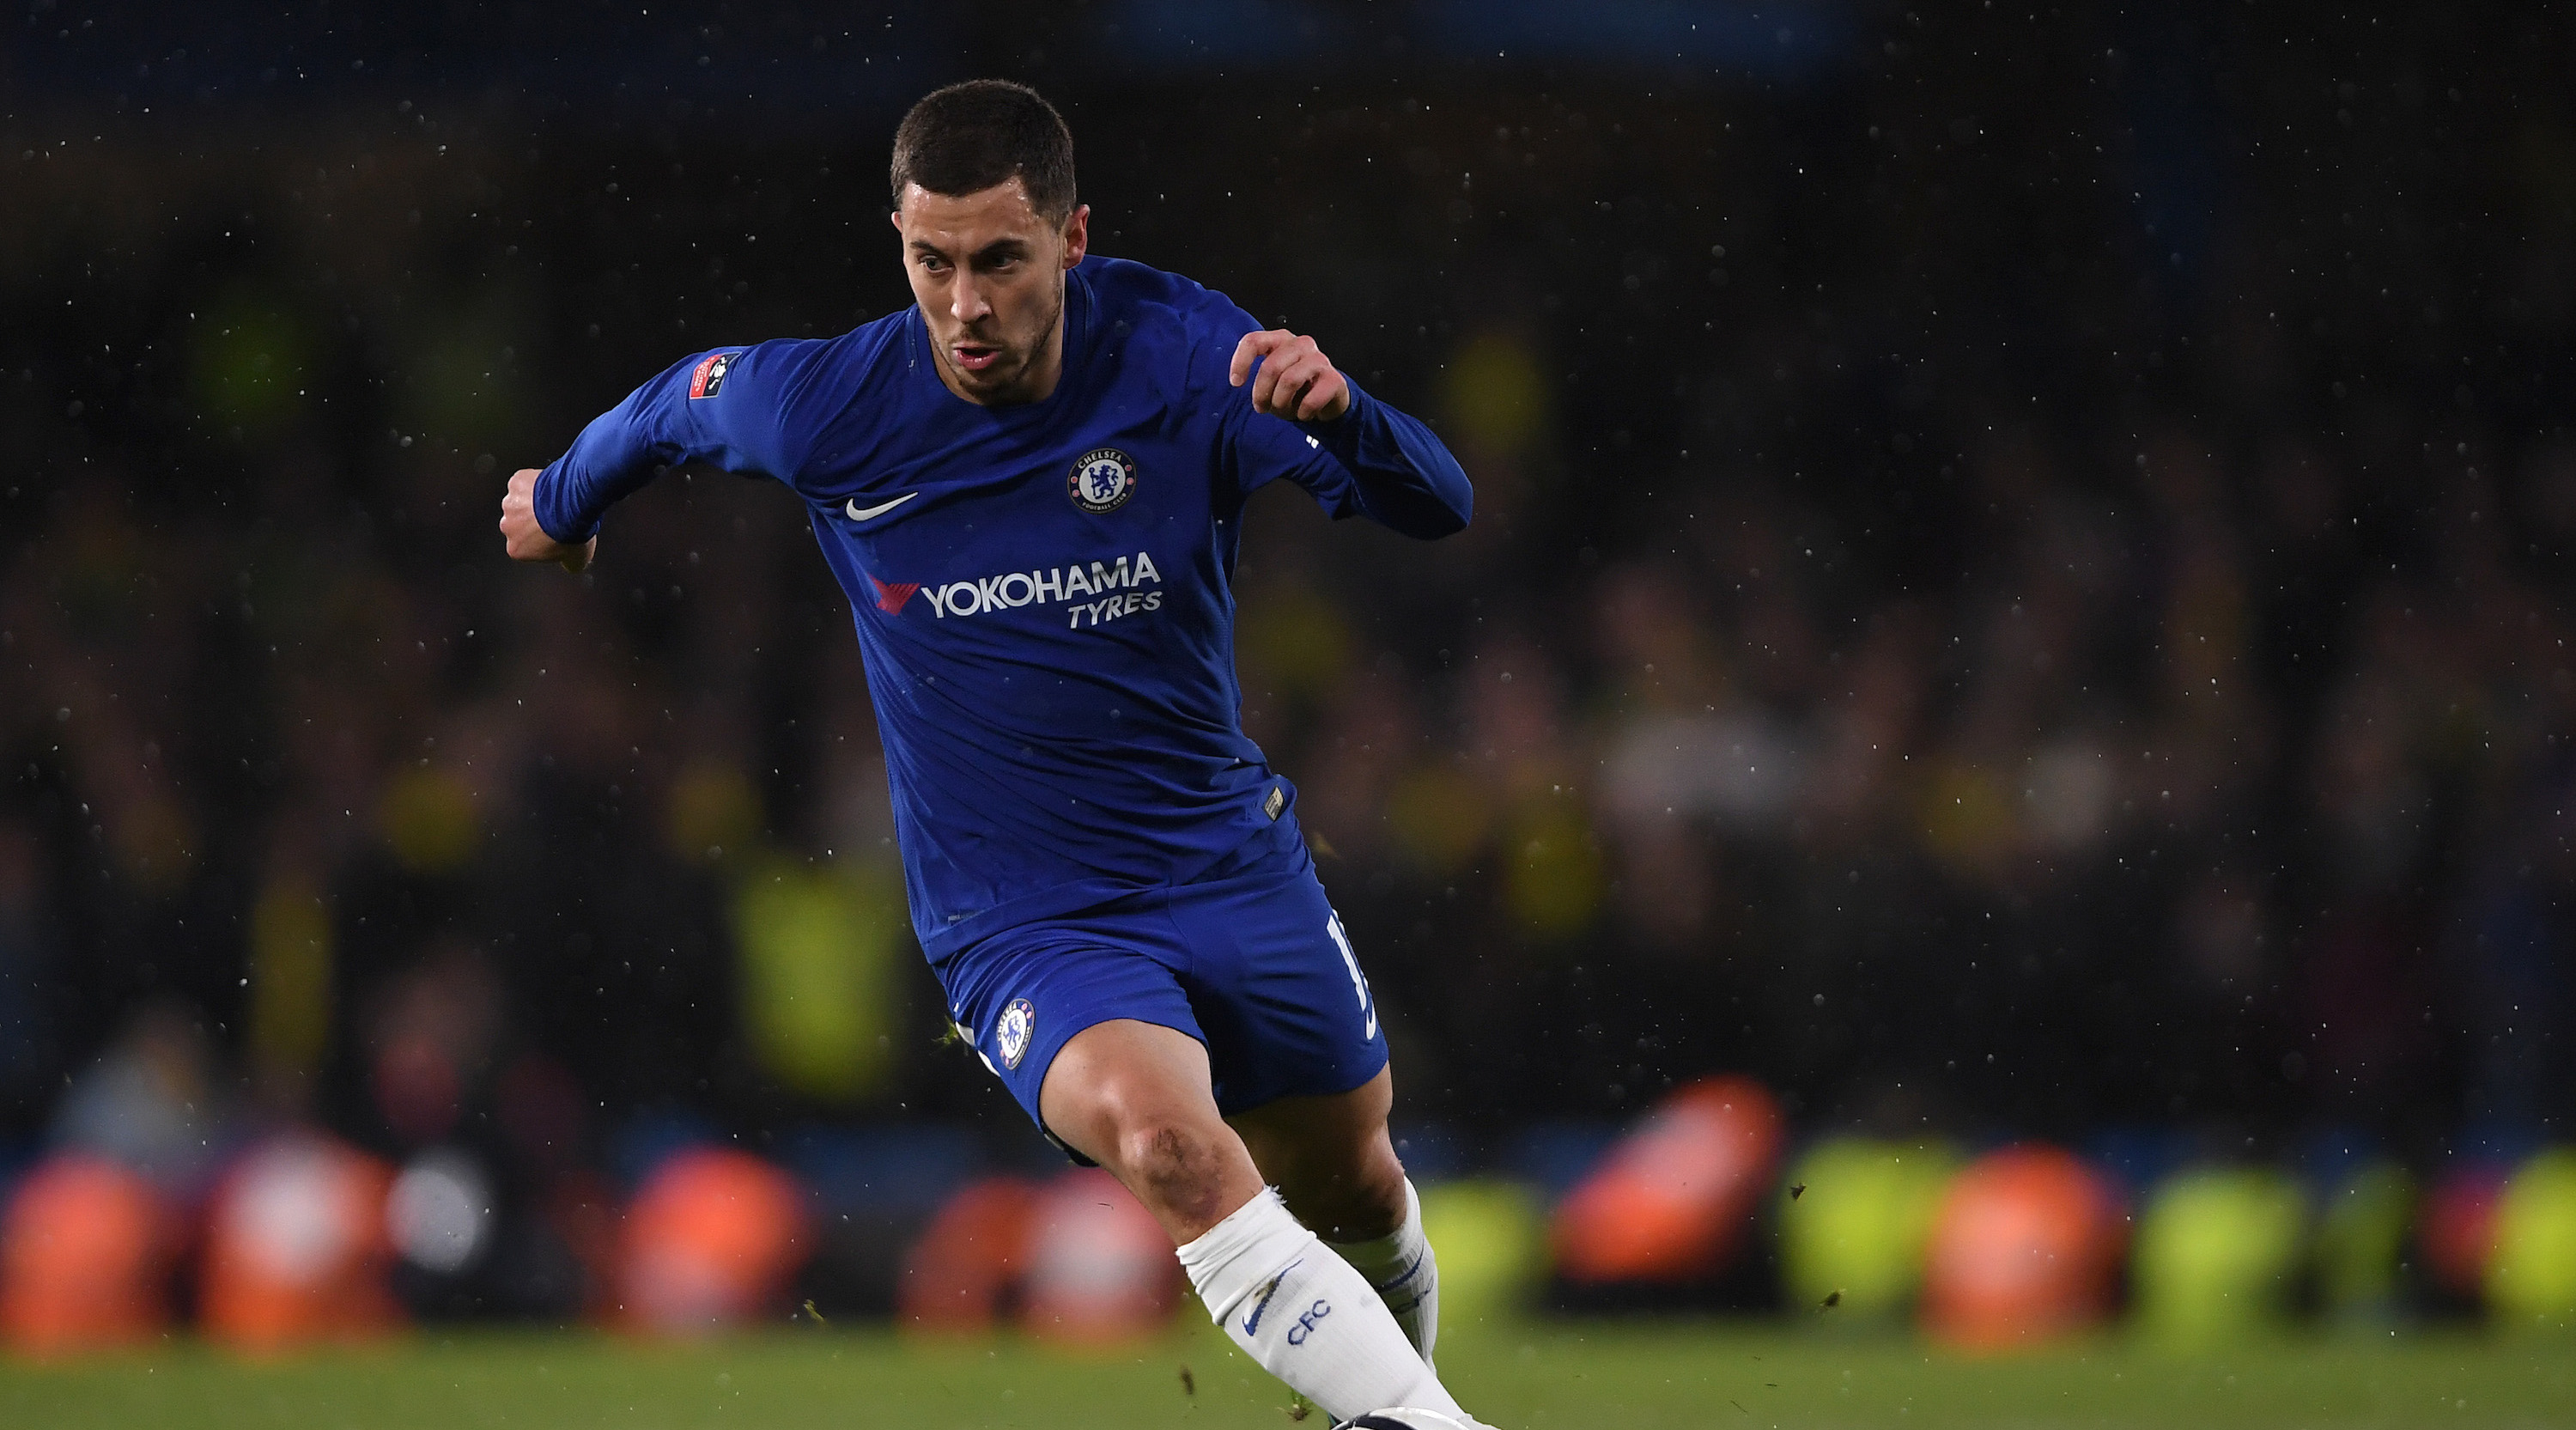 LONDON, ENGLAND - JANUARY 17: Eden Hazard of Chelsea in action during The Emirates FA Cup Third Round Replay between Chelsea and Norwich City at Stamford Bridge on January 17, 2018 in London, England. (Photo by Mike Hewitt/Getty Images)